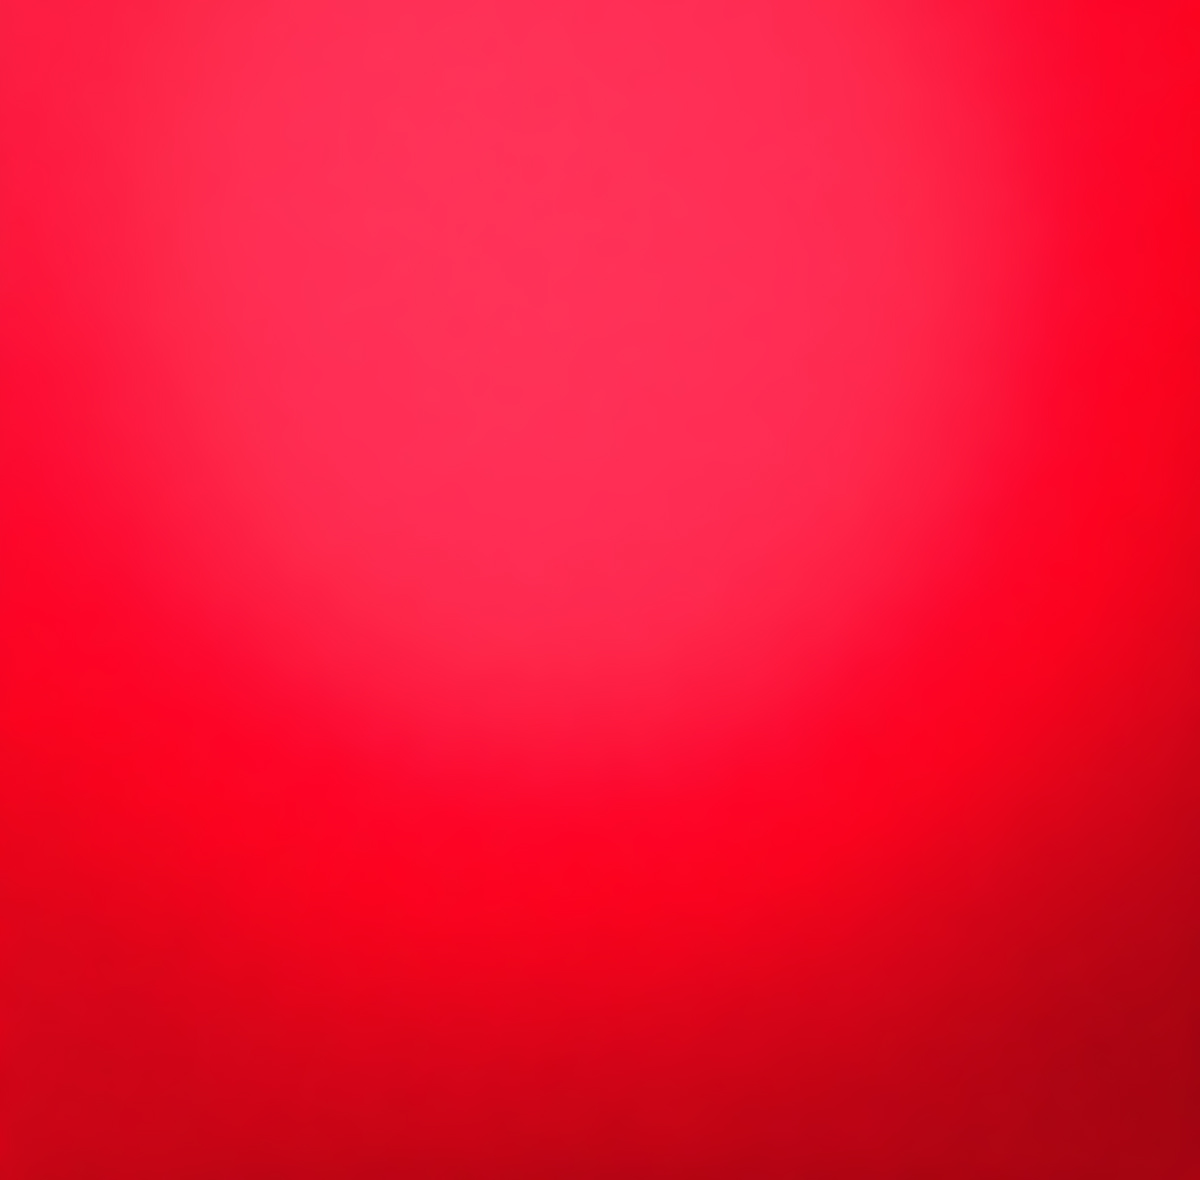 Free Red Background Cliparts, Download Free Clip Art, Free.